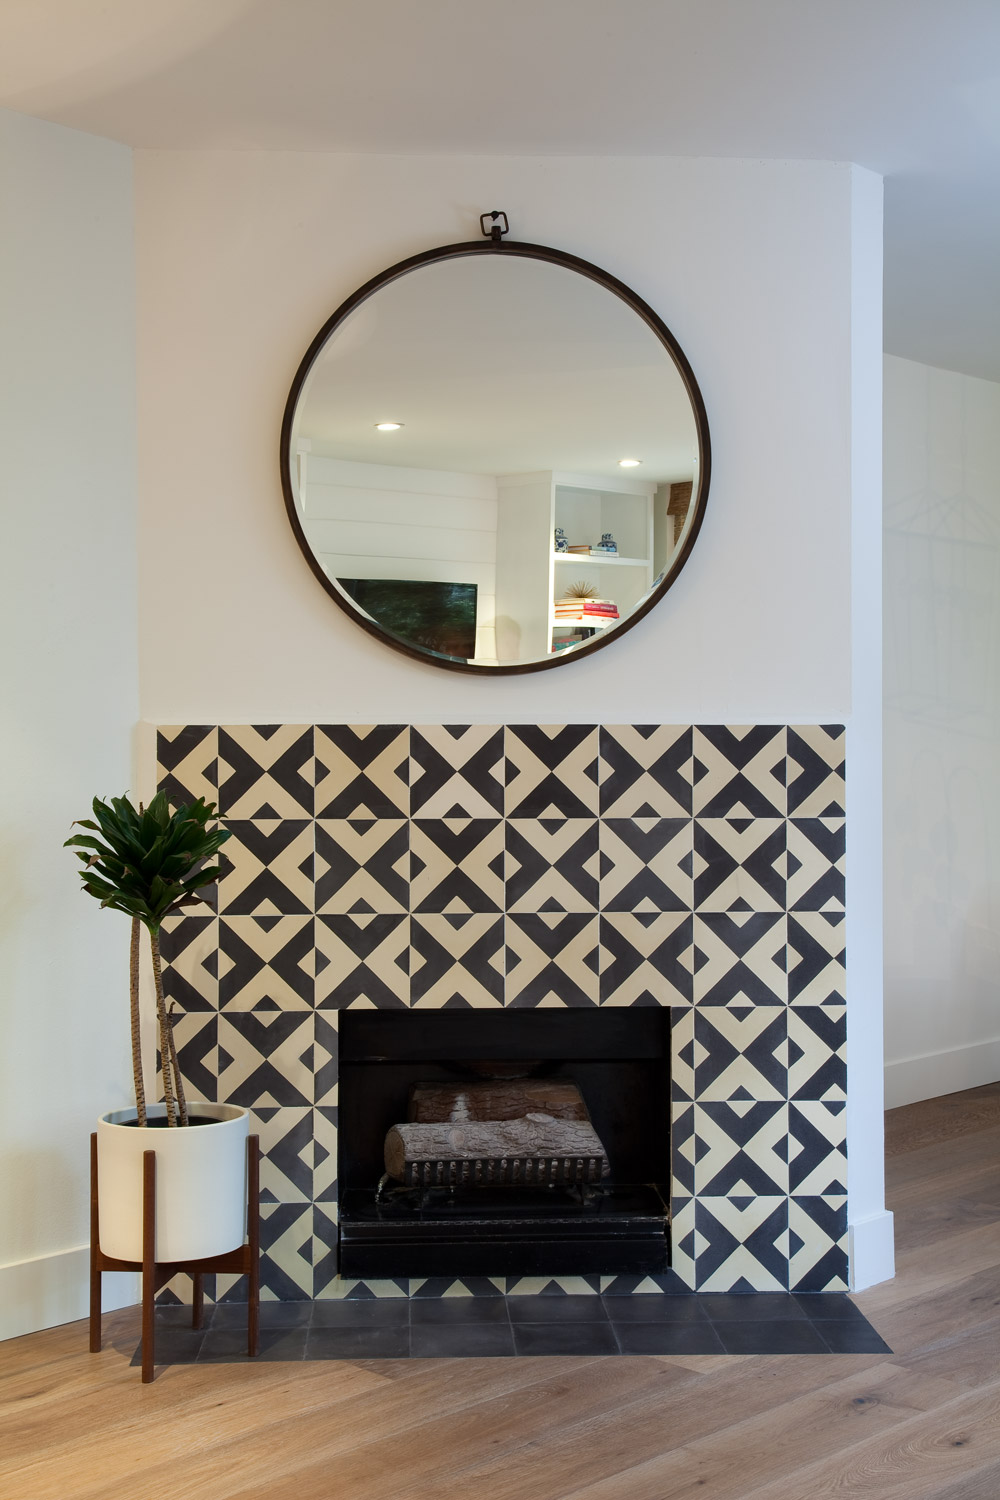 Granada Tile S Serengeti Cement Tiles Update A Fireplace